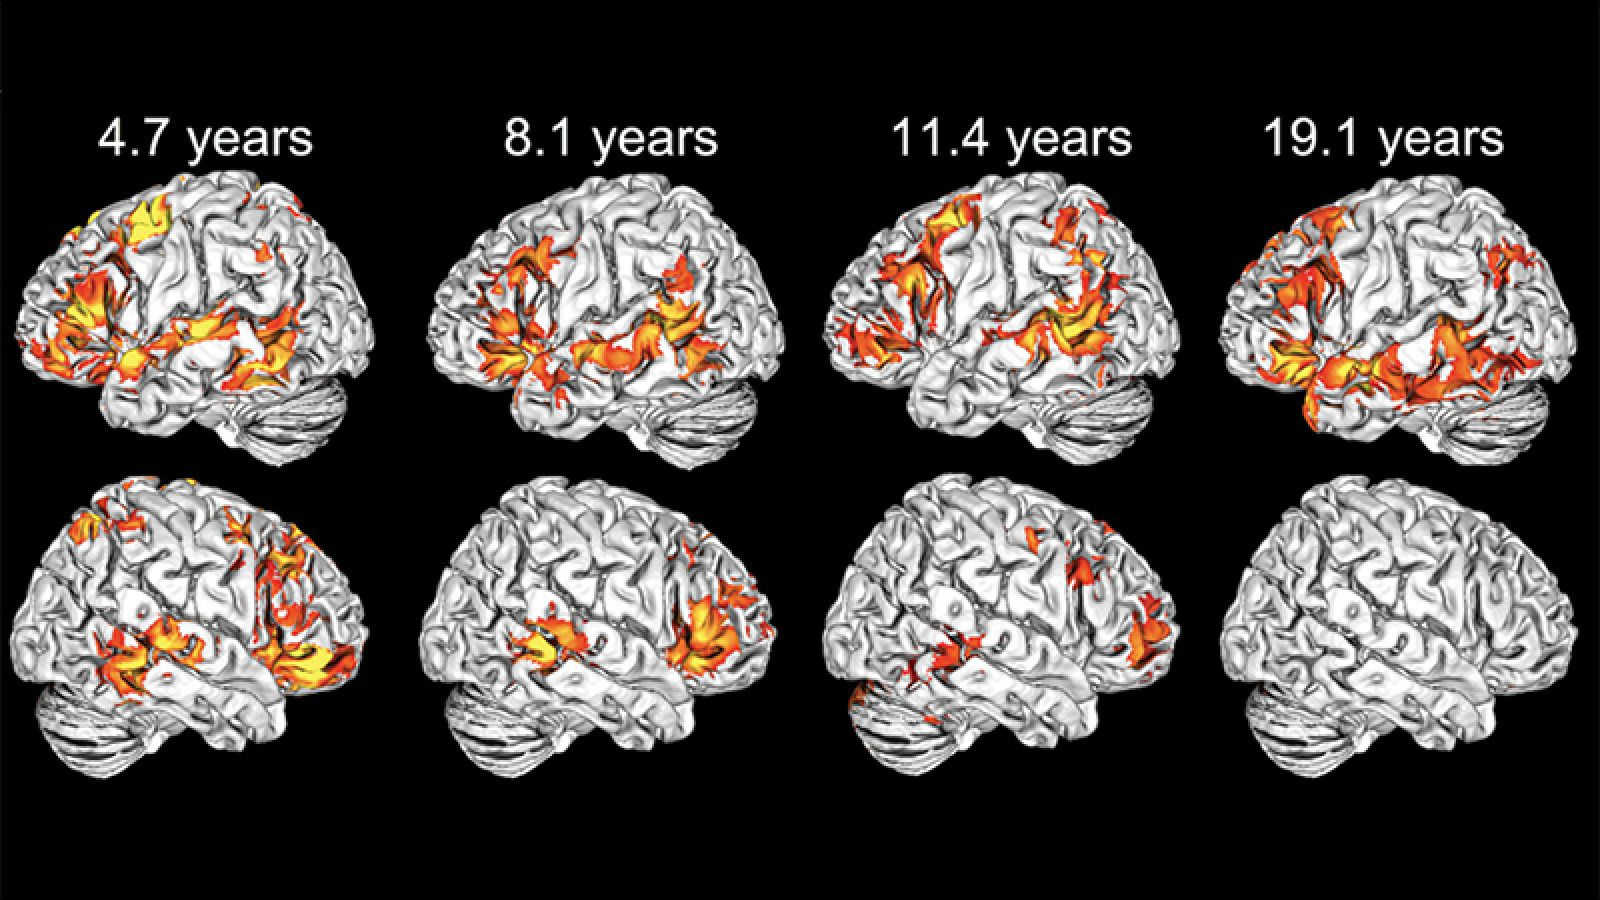 Illustration of eight brains showing how left-hemisphere language areas is evident in the youngest children declines over age from 4.7 years to 8.1 years to 11.4 years to 19.1 years of age